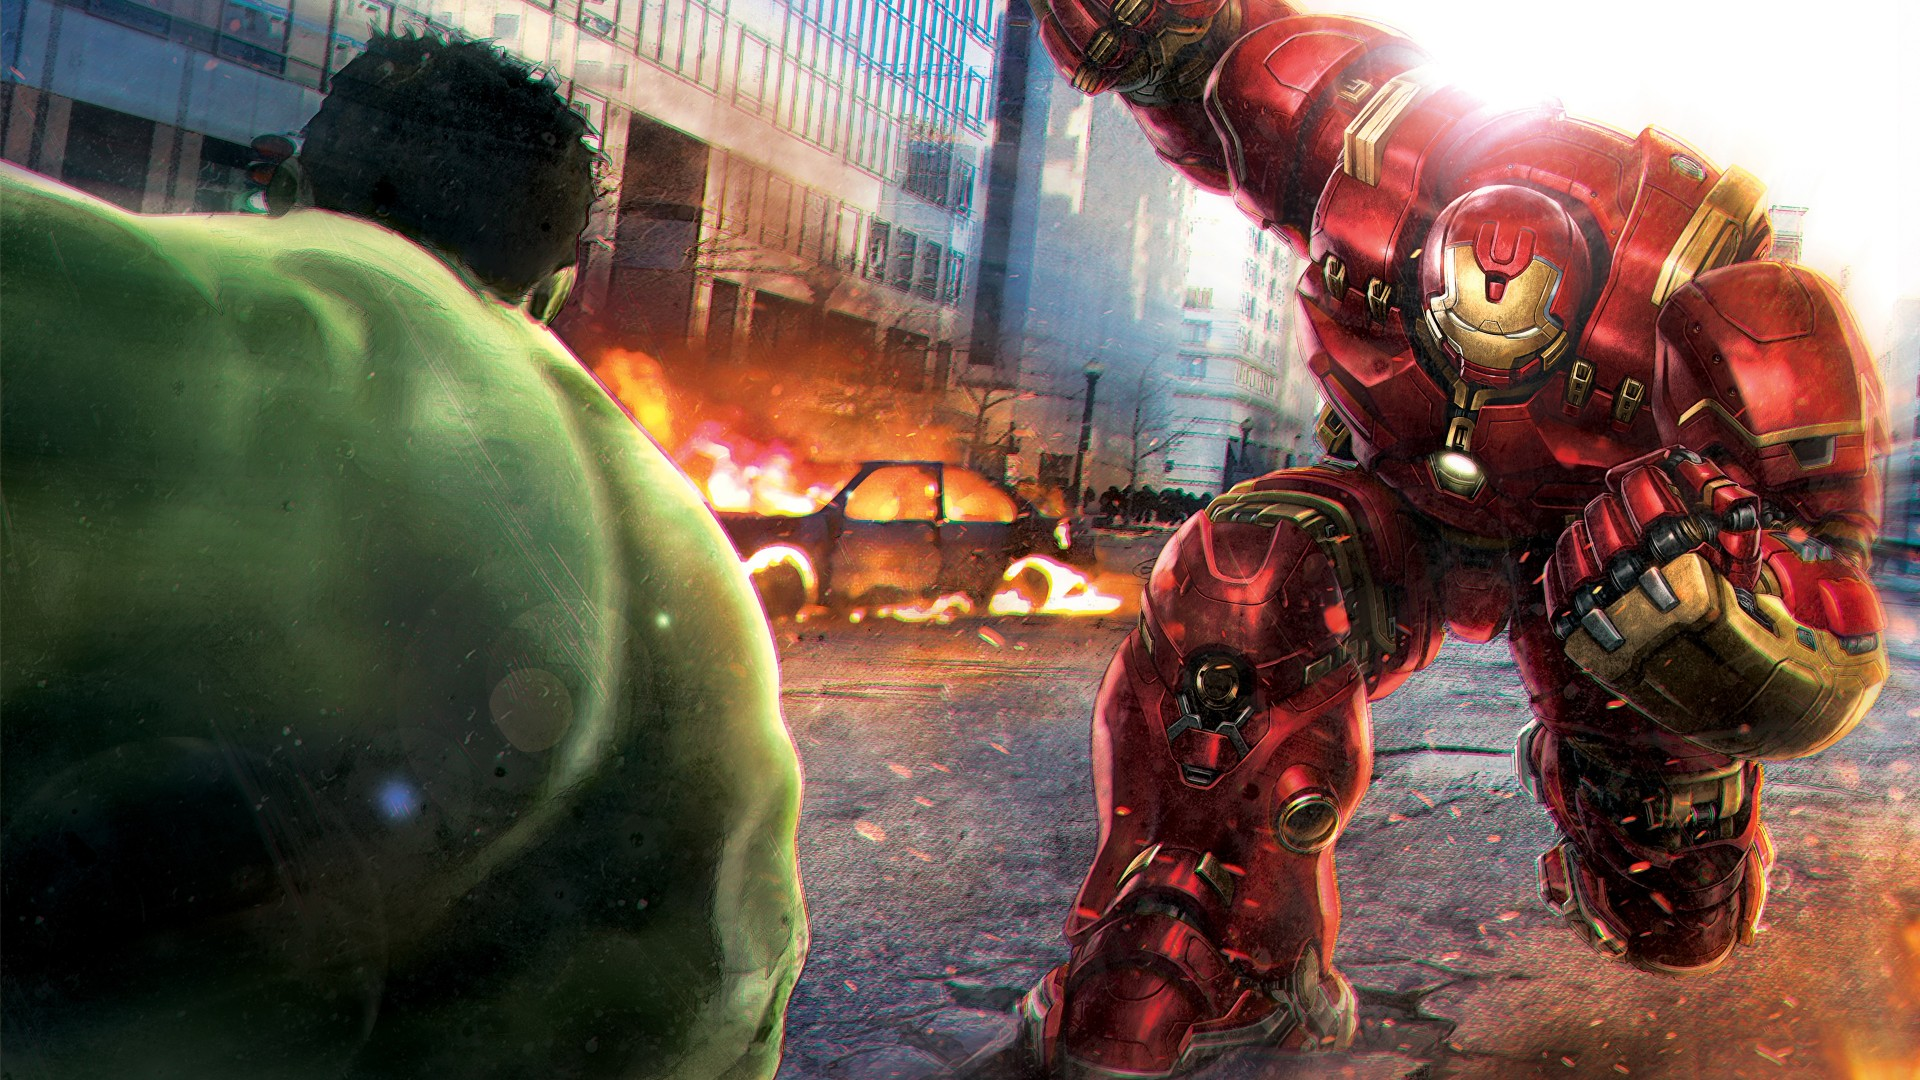 3d Wallpaper For Ipad 4 Hulk Vs Hulkbuster Wallpapers Hd Wallpapers Id 15635